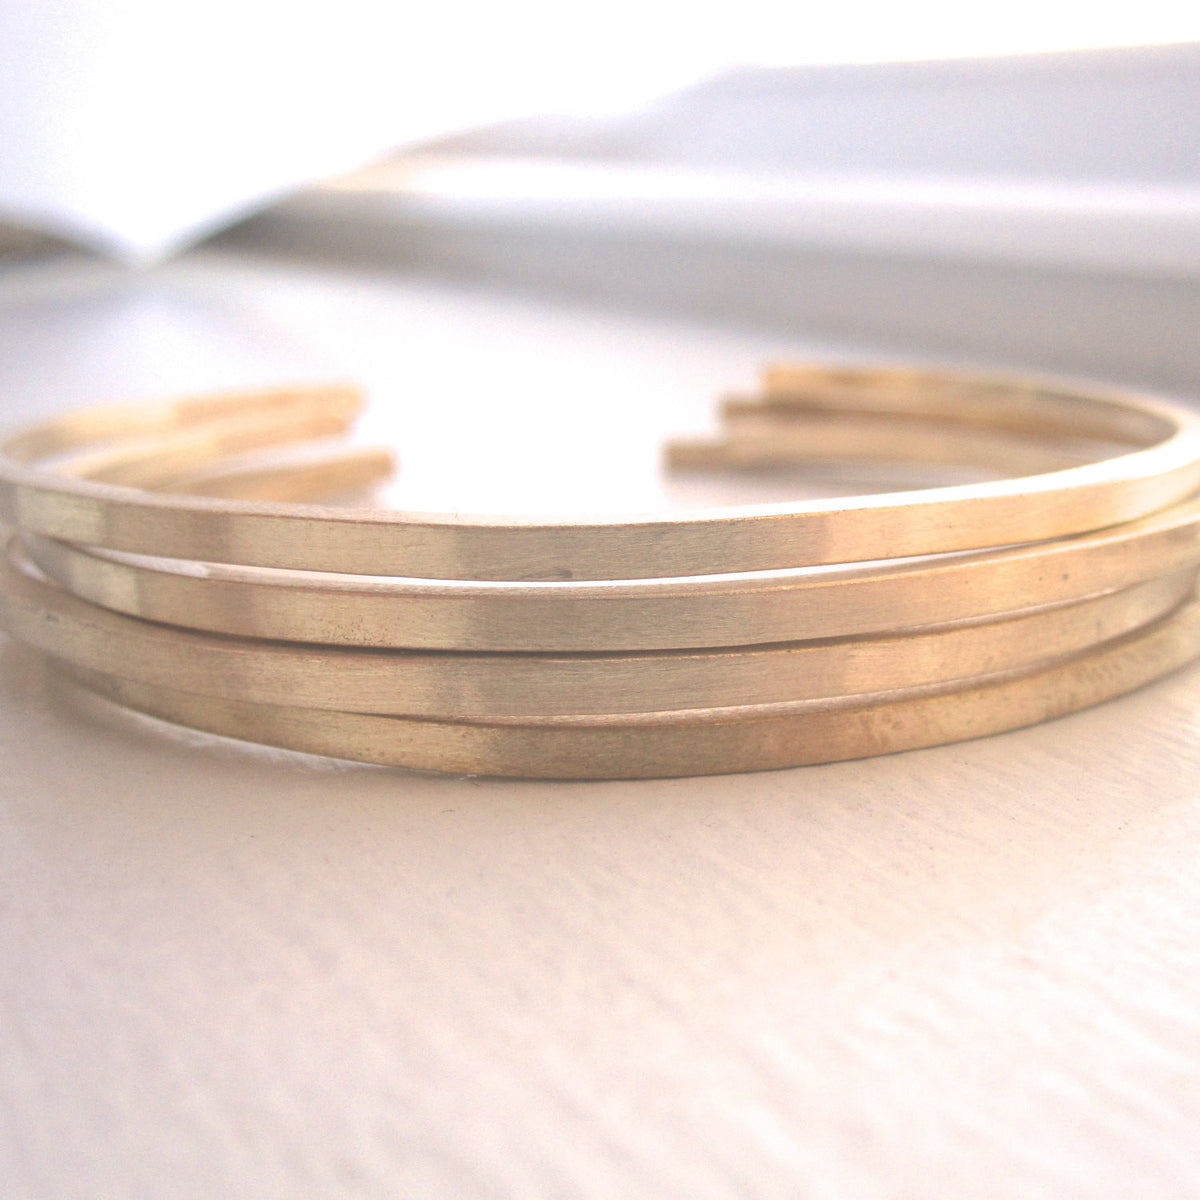 Set of 4 Brass Hand-Made Adjustable Square Cuff Bangle Bracelets With Rounded Ends - 0133 - Virginia Wynne Designs